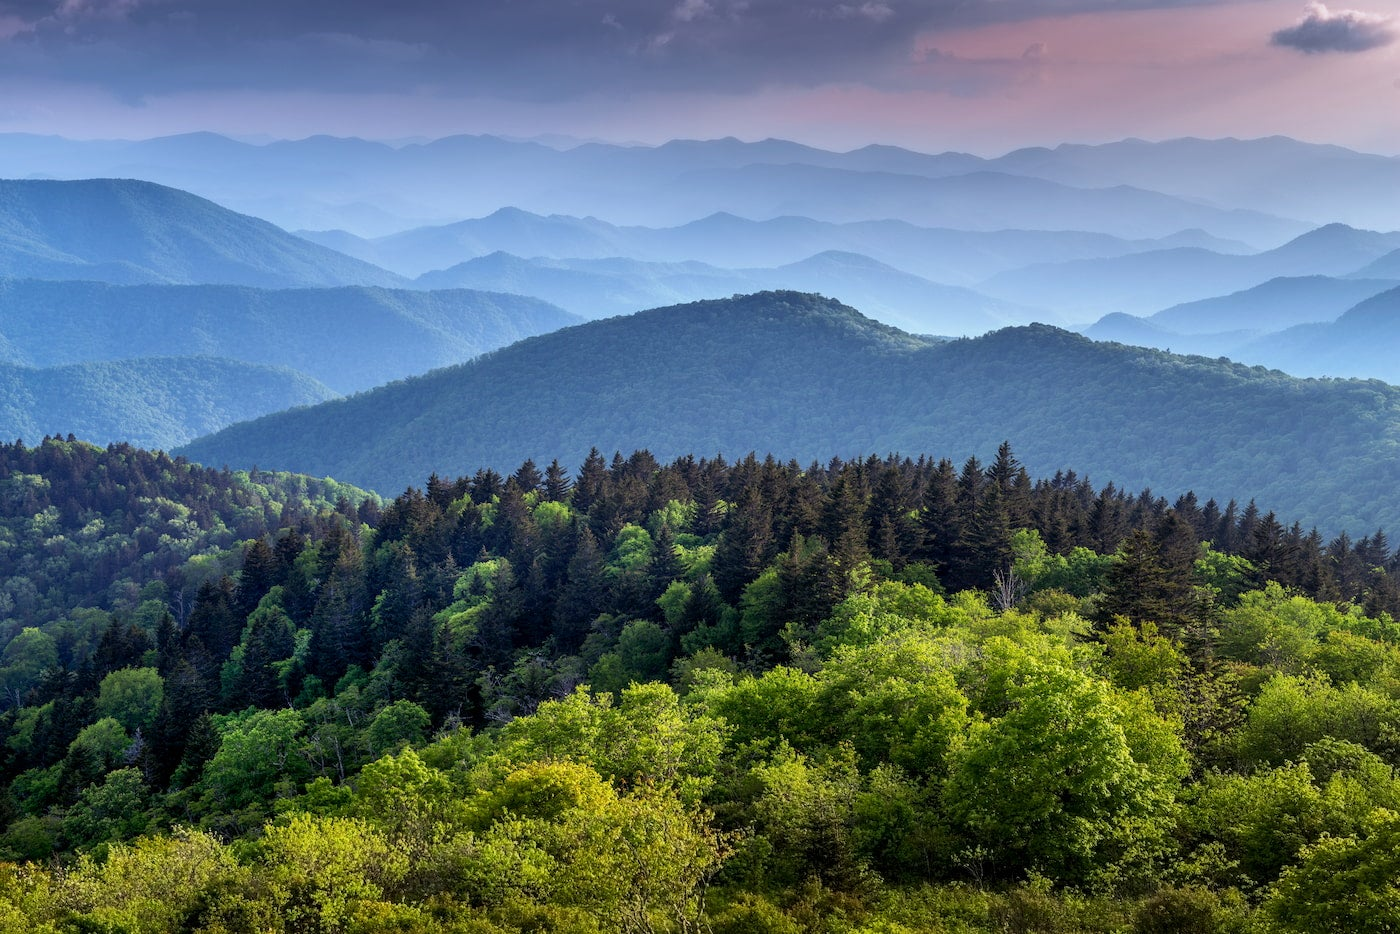 Landscape of mountain peaks in the Smokey Mountains at dusk.